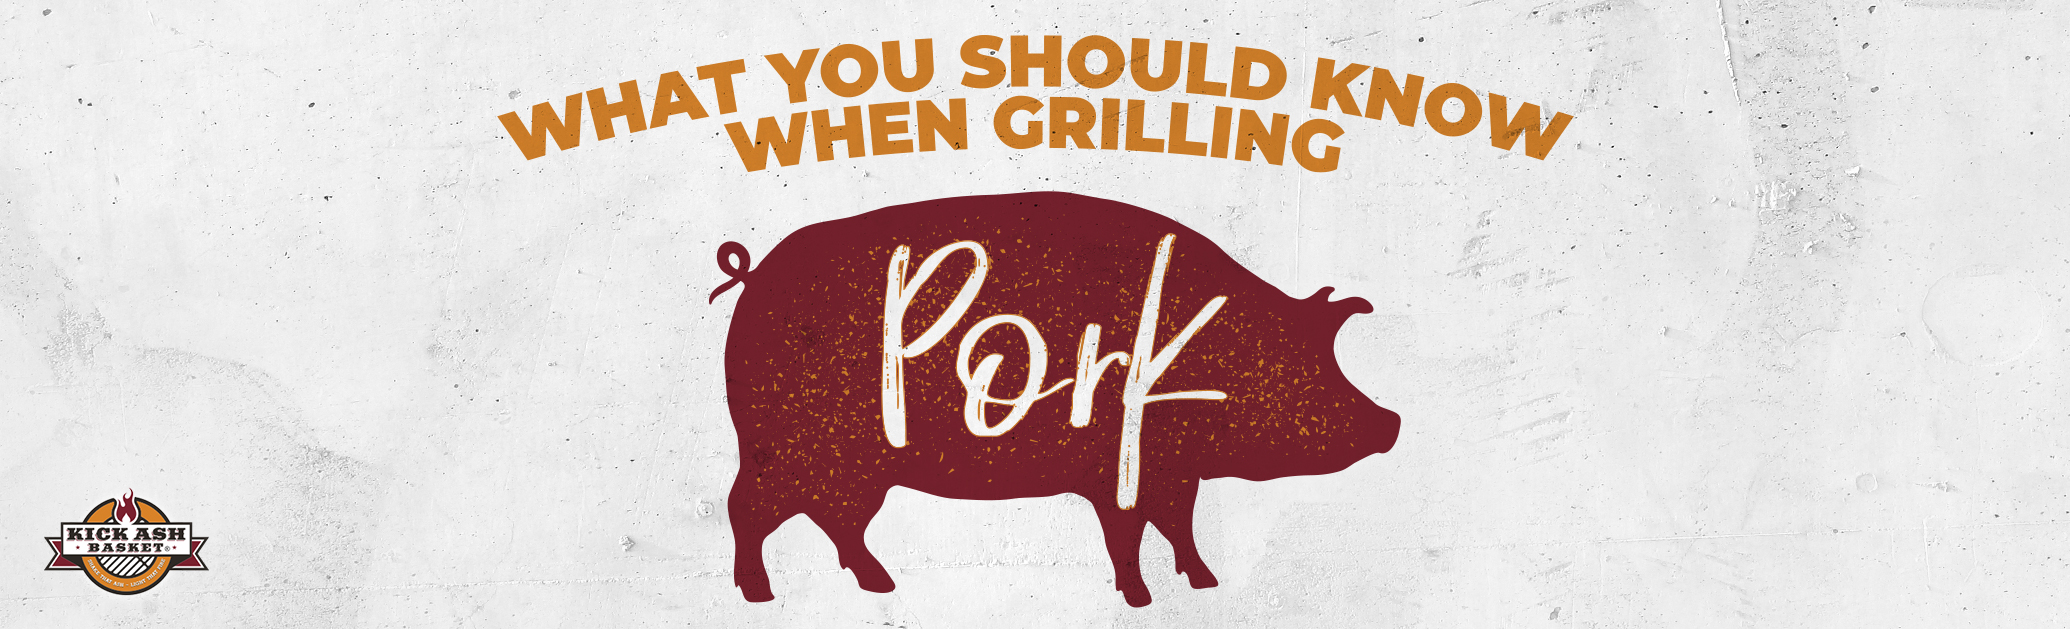 What You Should Know When Grilling Pork